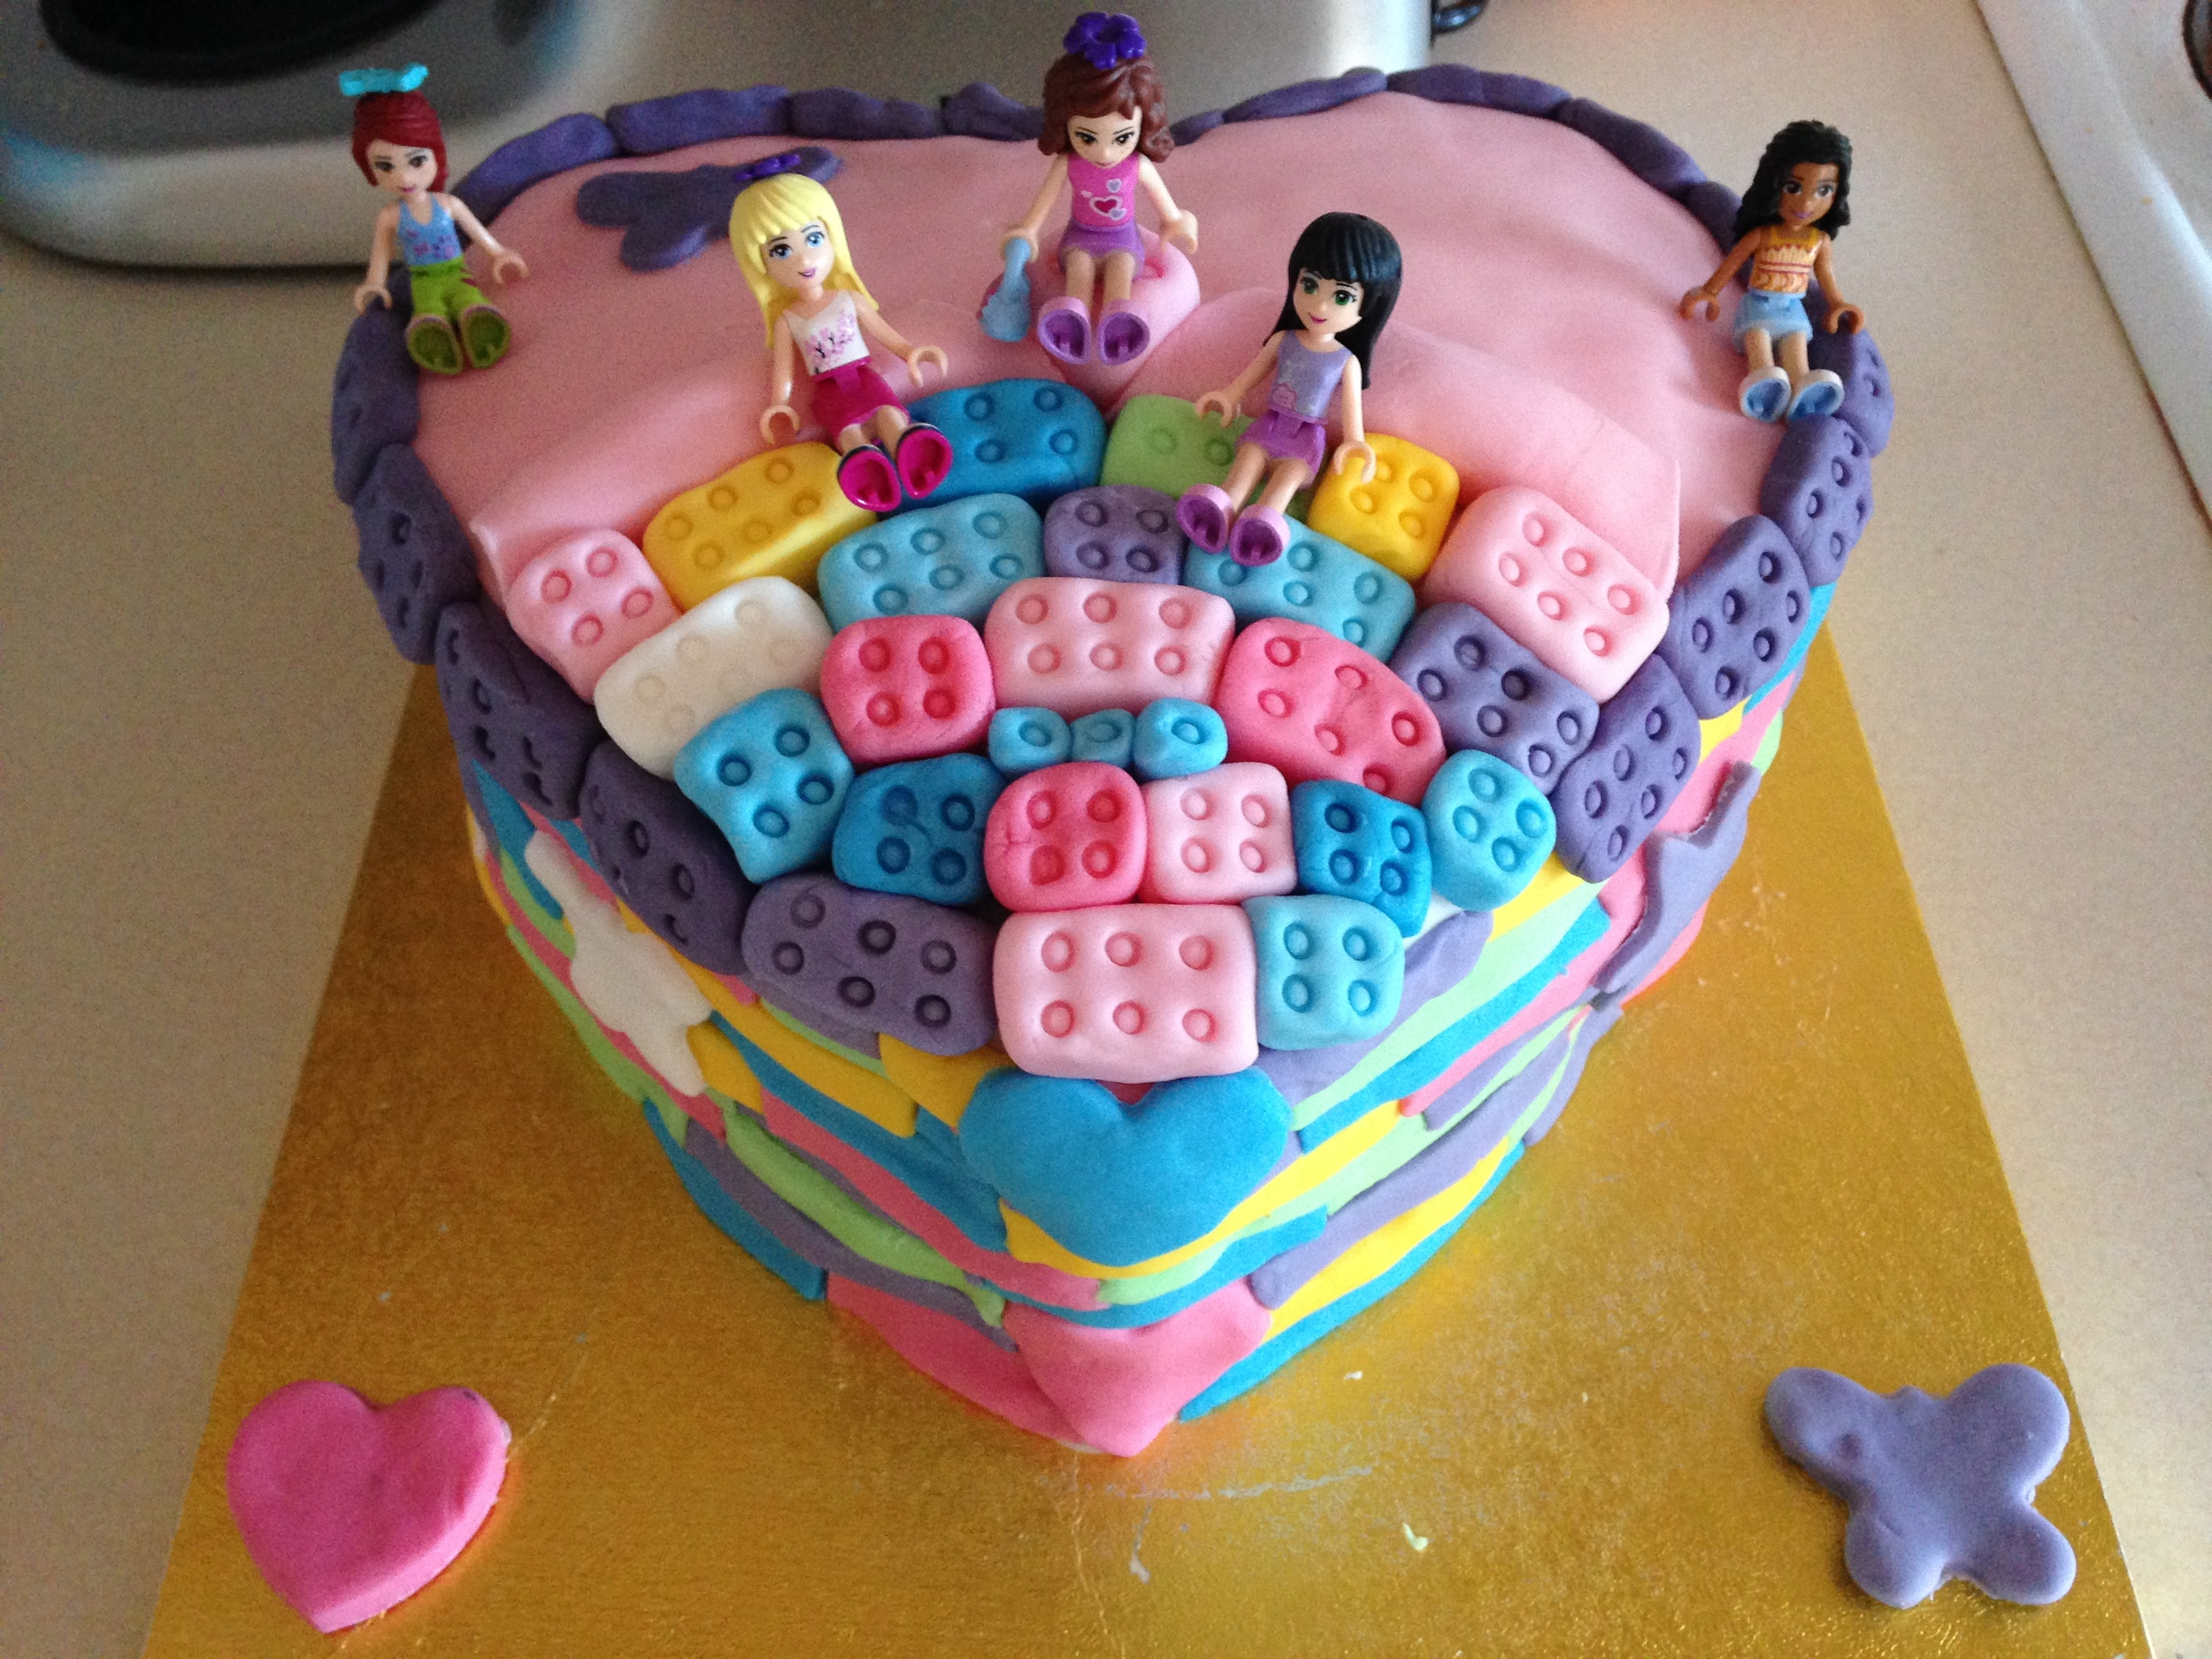 Lego Friends Cake - Building Time — Lots of lotty